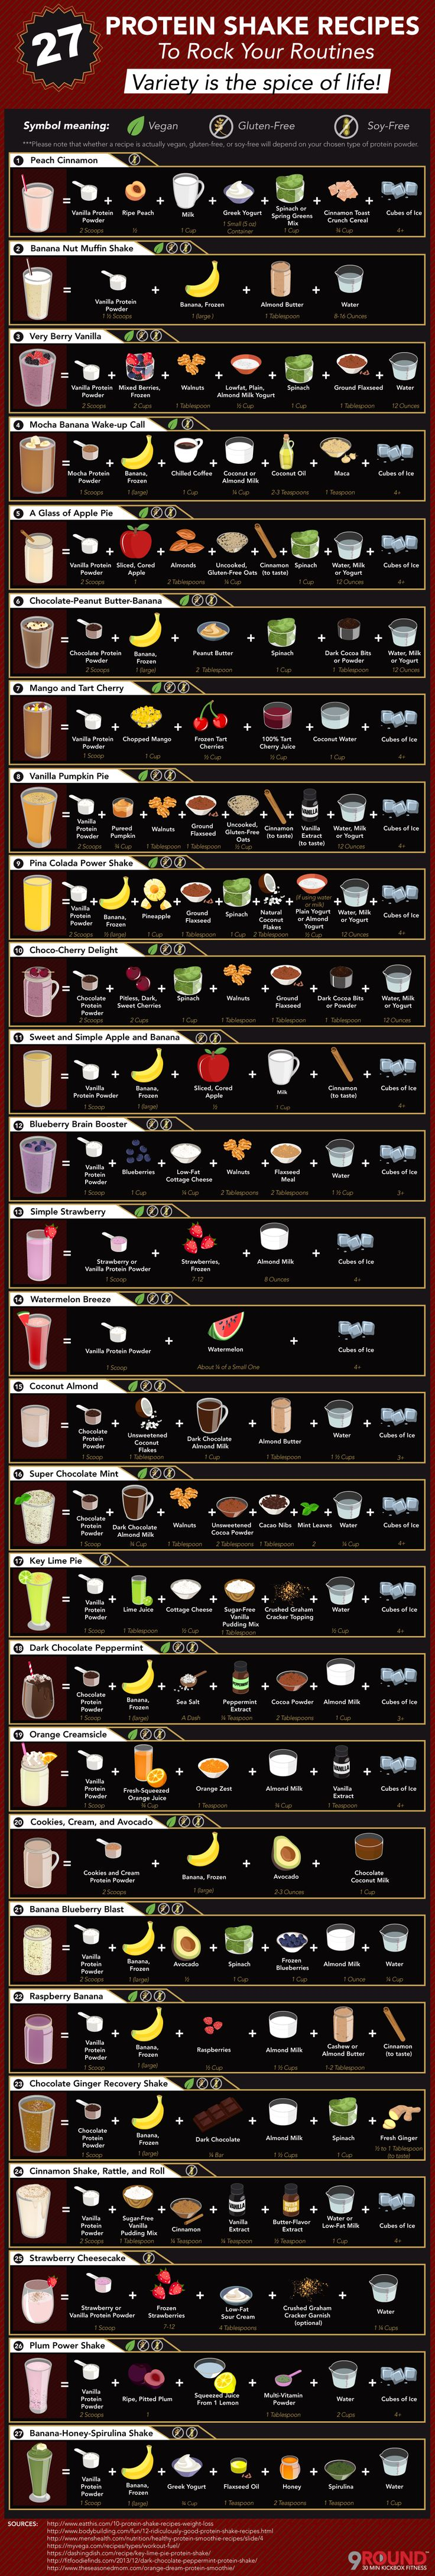 Protein Shake Recipes to Rock Your Routines | 9round.com #Infographic…